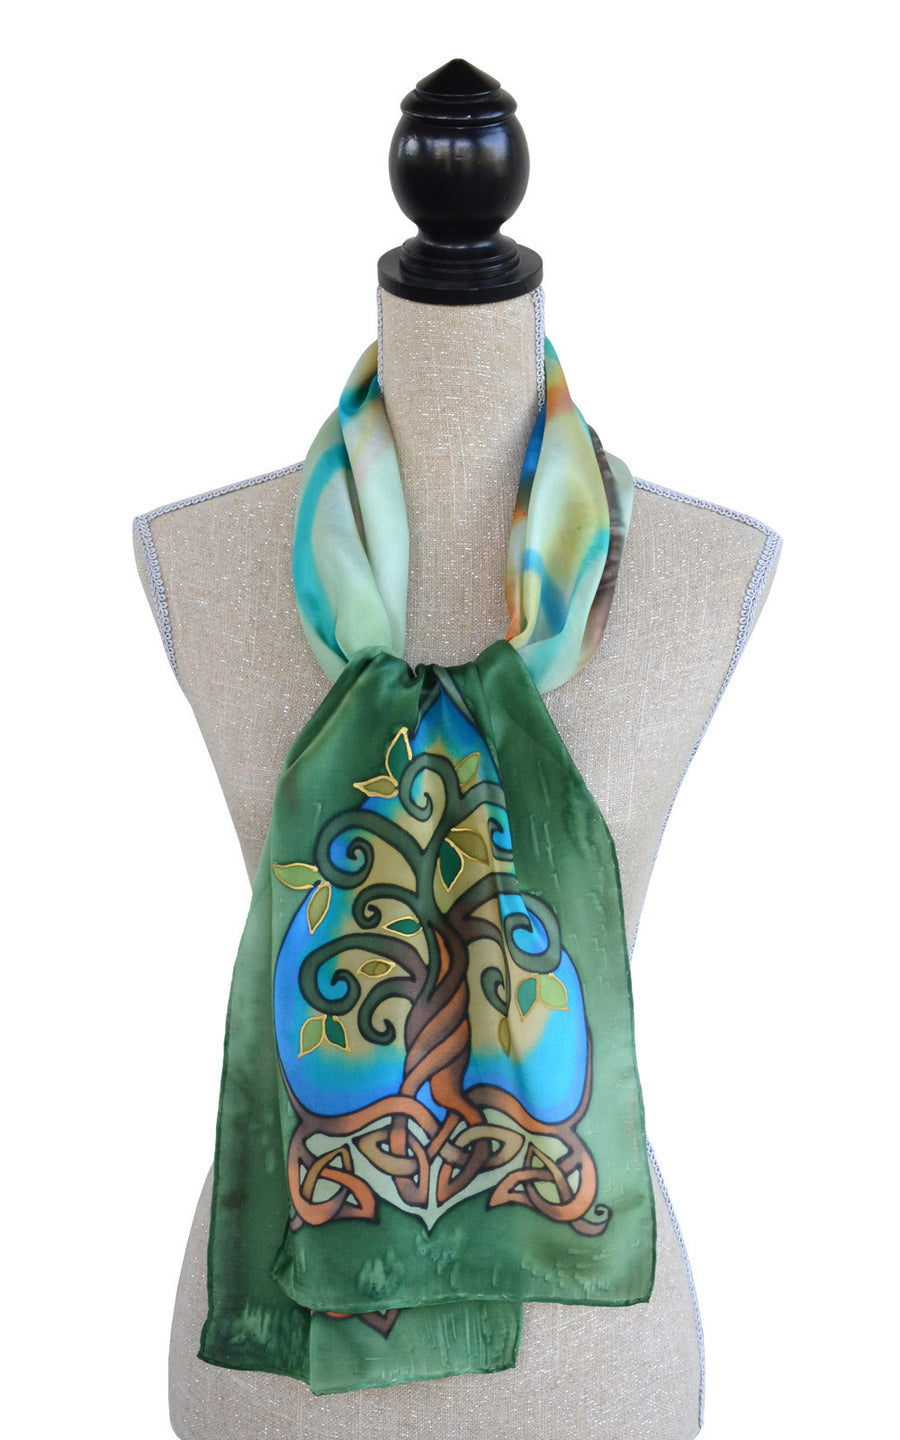 Hand-painted silk tree of life scarf with celtic knot patterns